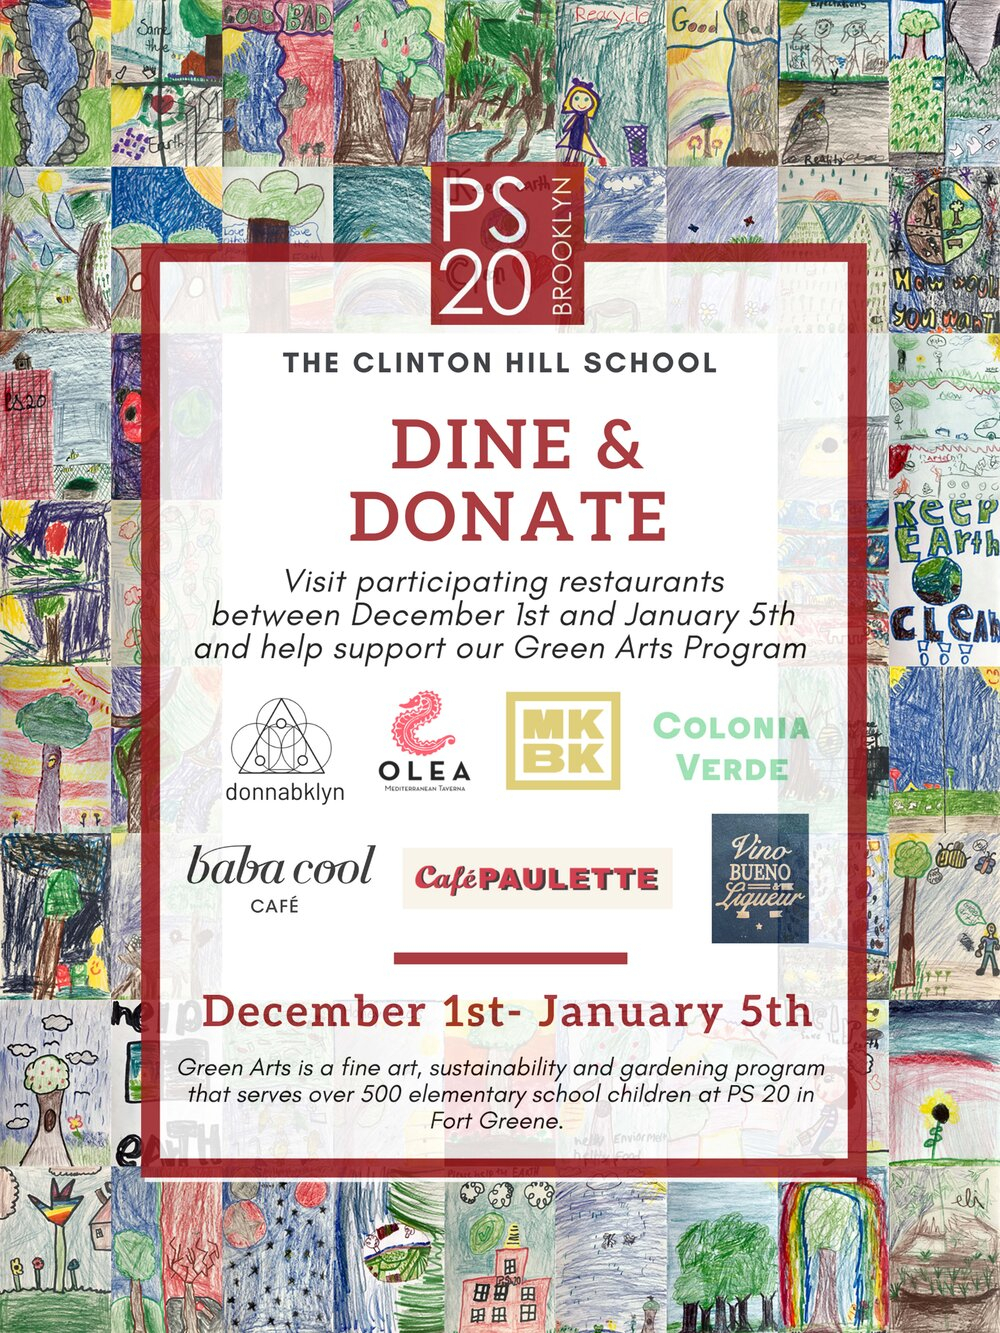 From Dec 5Th, 2019 To Jan 5Th, 2020 'dine & Donate' For with regard to Nyc Alternate Side Parking Calendar 2020